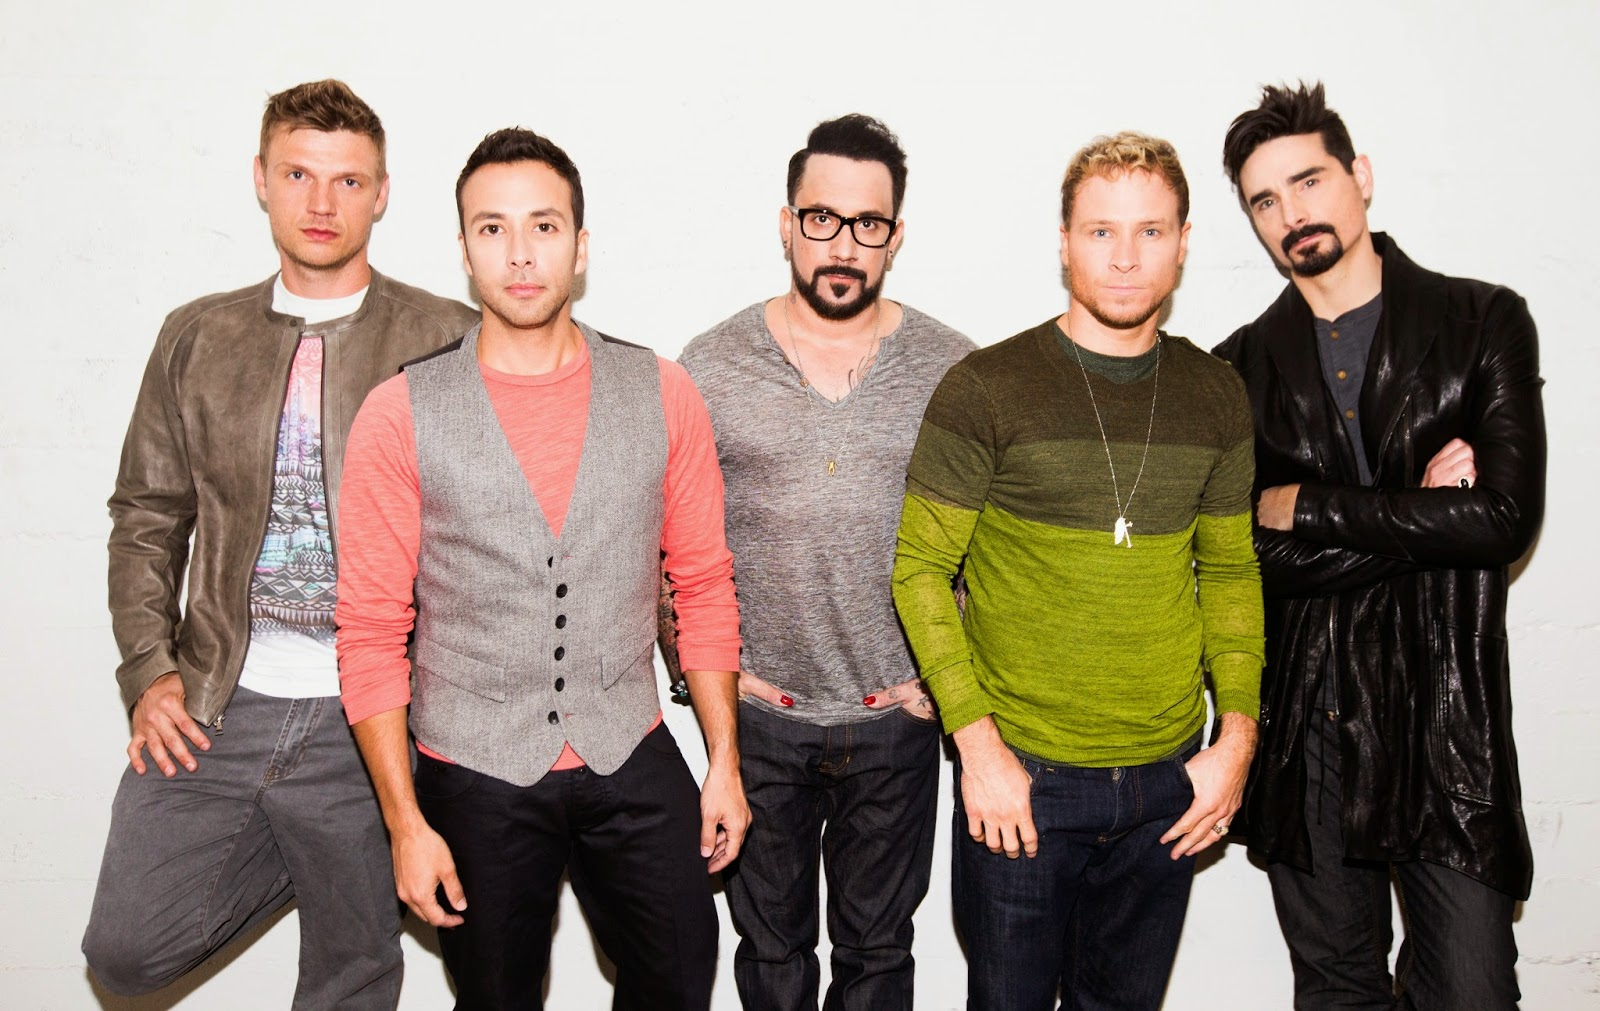 Everybody! The Backstreet Boys are coming to town!